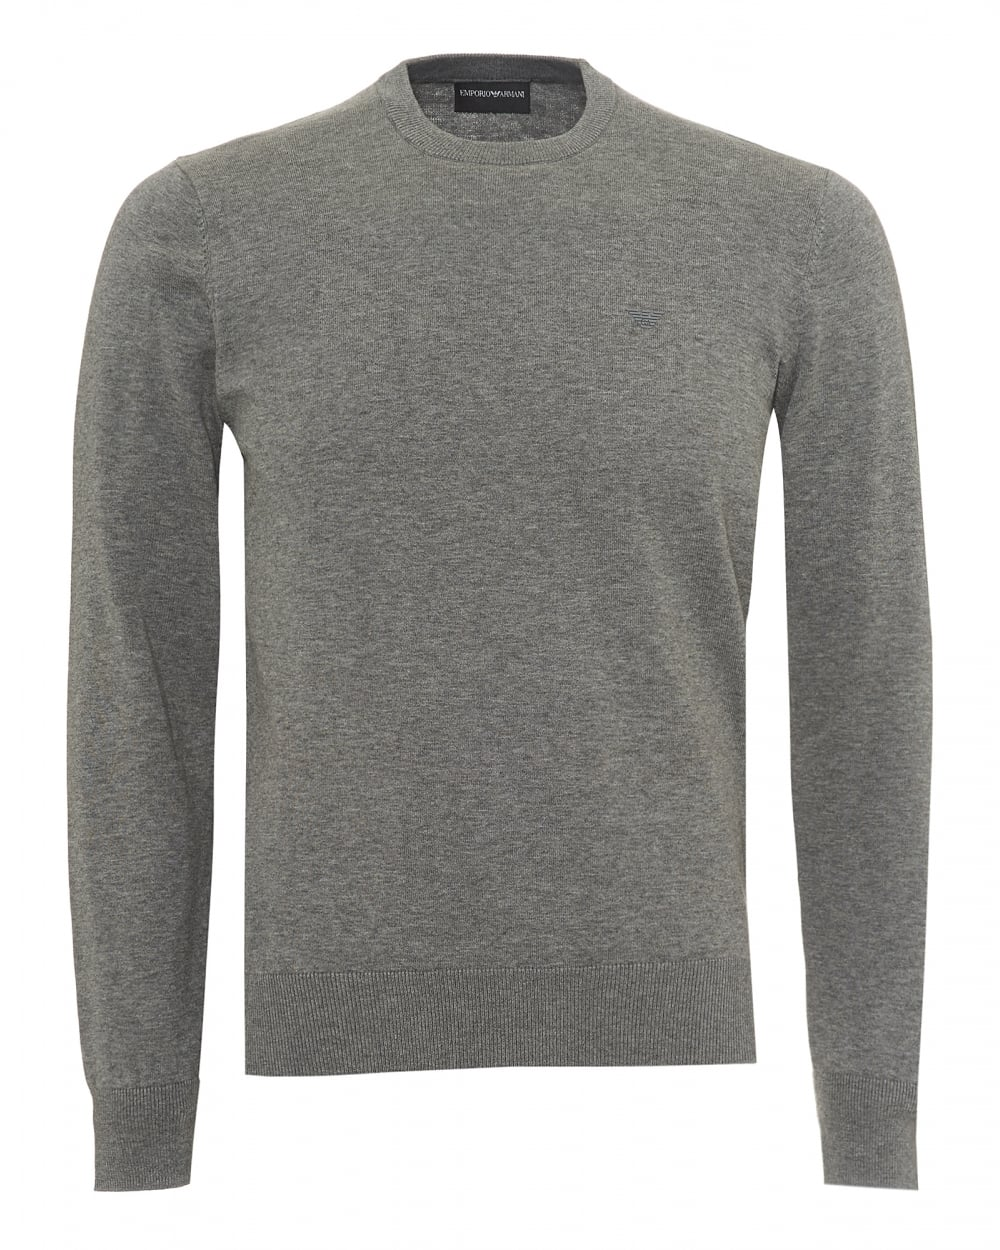 sito affidabile 57cb8 b0f21 Mens Contrast Subtle Piping Knit, Regular Fit Grey Jumper